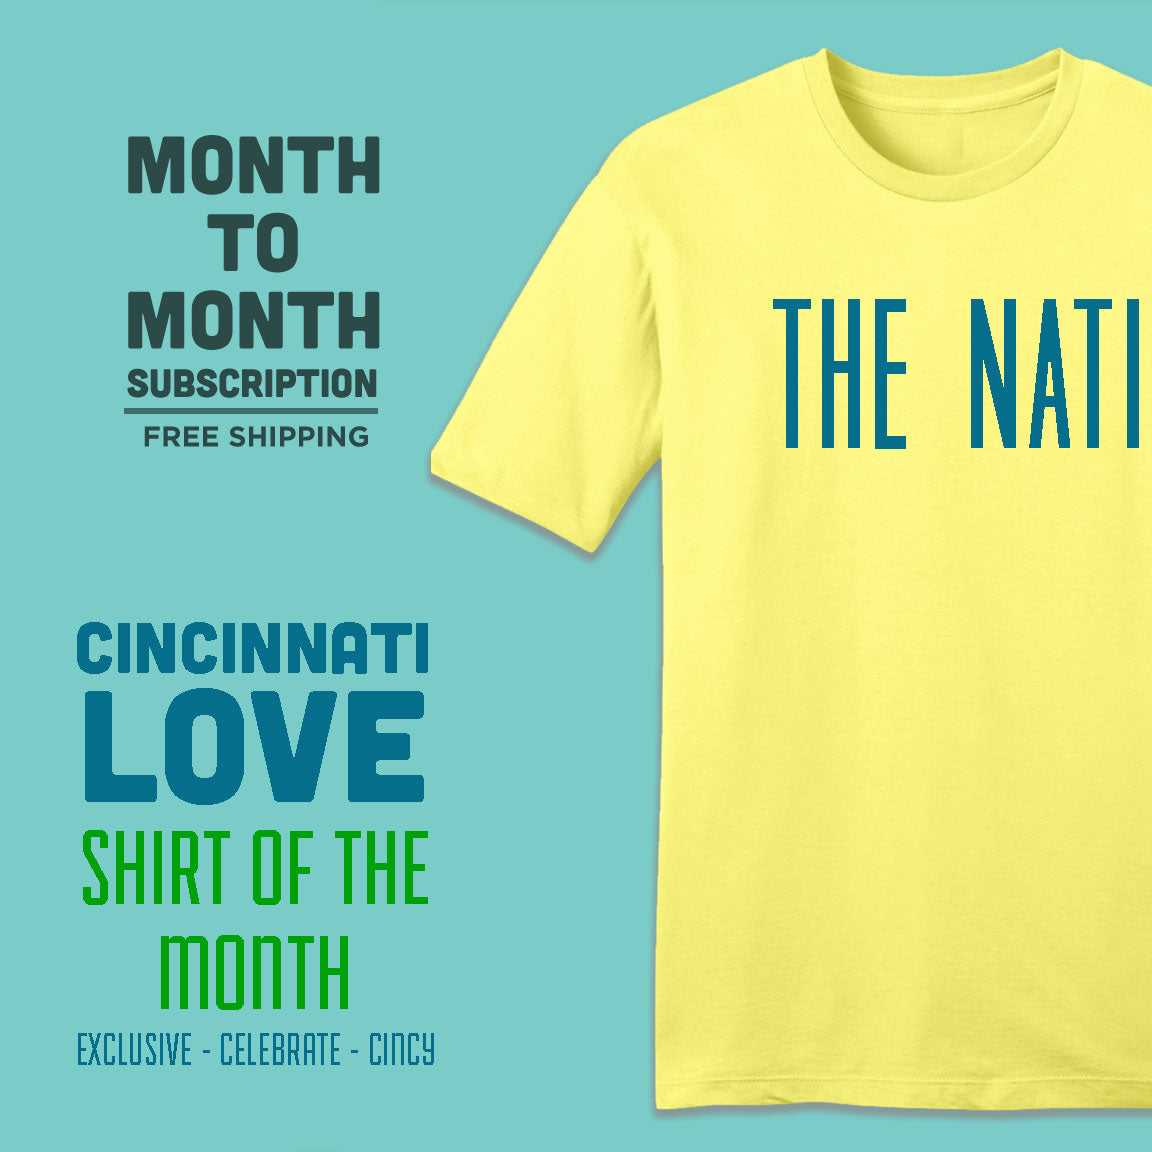 Cincinnati Love Shirt of the Month - Cincy Shirts